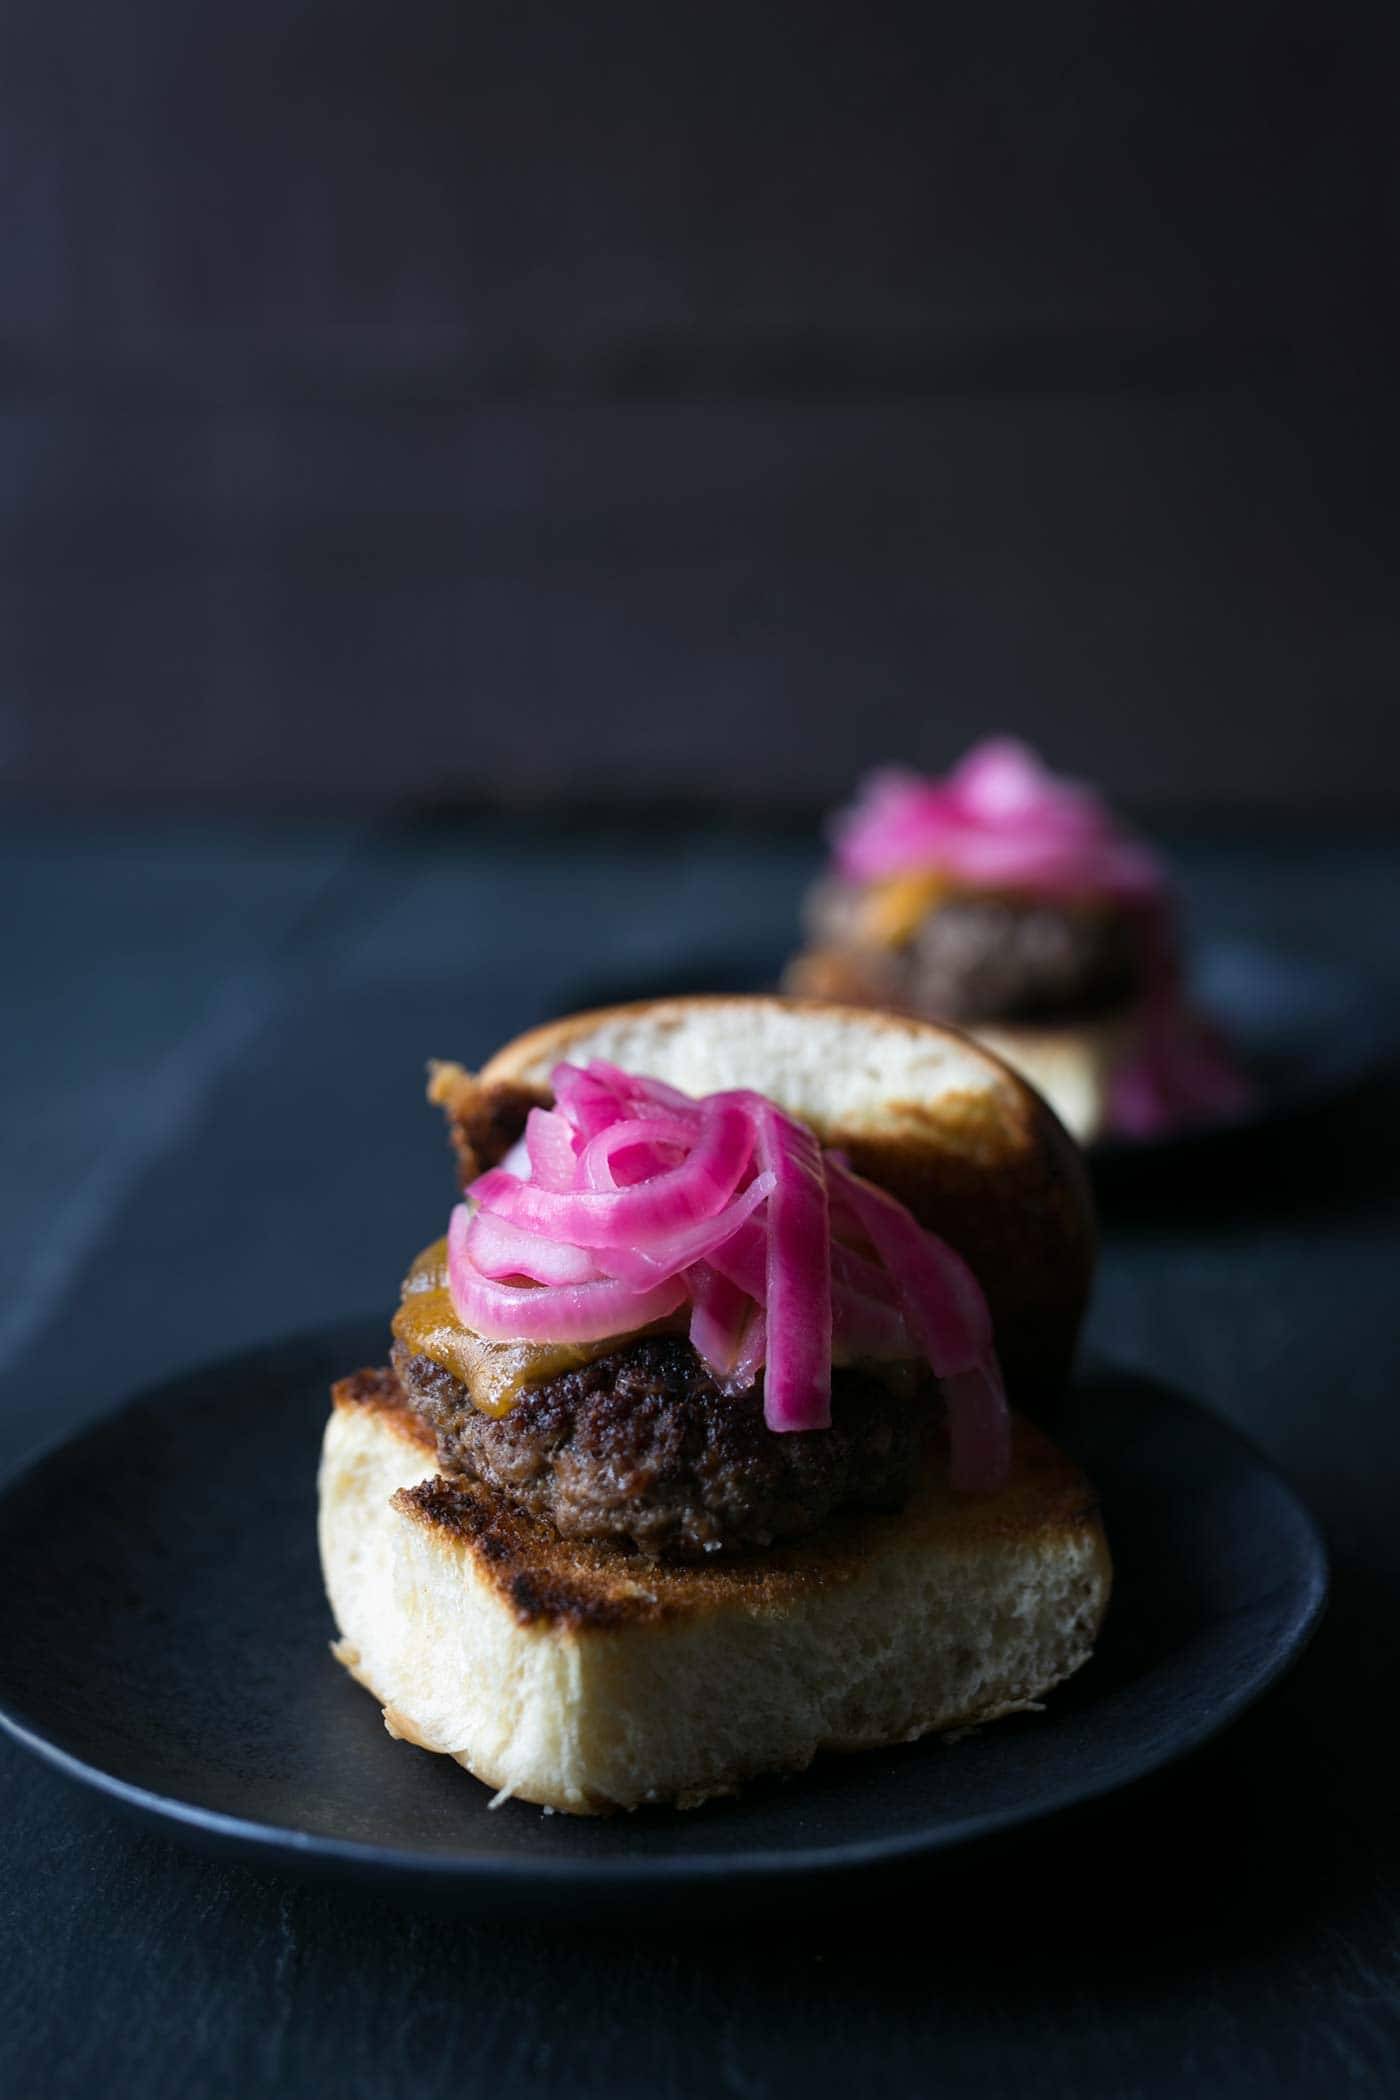 These Cheeseburger Sliders with Quick Pickled Onions are the PERFECT combinations of flavors and texture. They are also so easy to make! Get the recipe from SavorySimple.net.